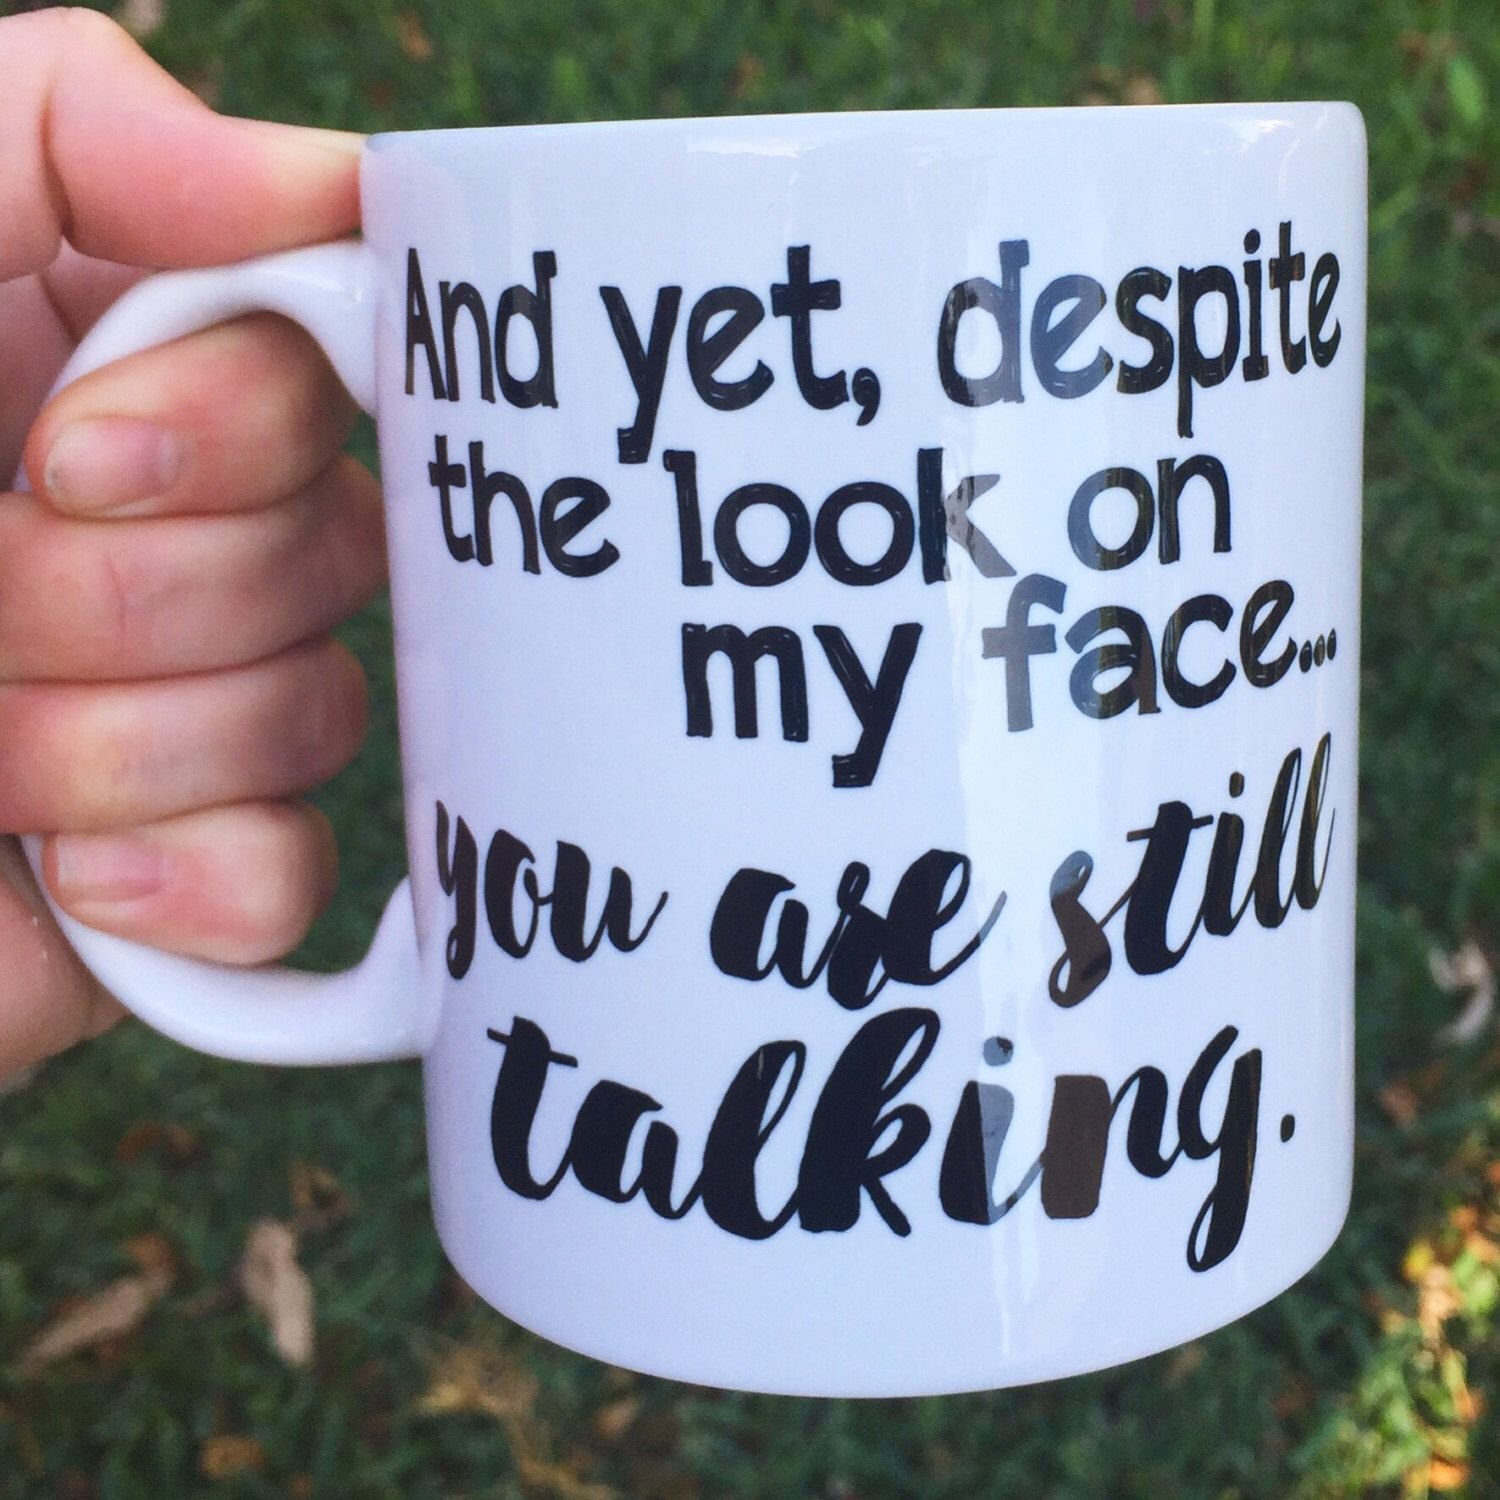 Funny Coffee Mug, Inappropriate Mug, Despite the look on my face, you are still talking, funny gift, mug for work, boss mug, boss lady, work